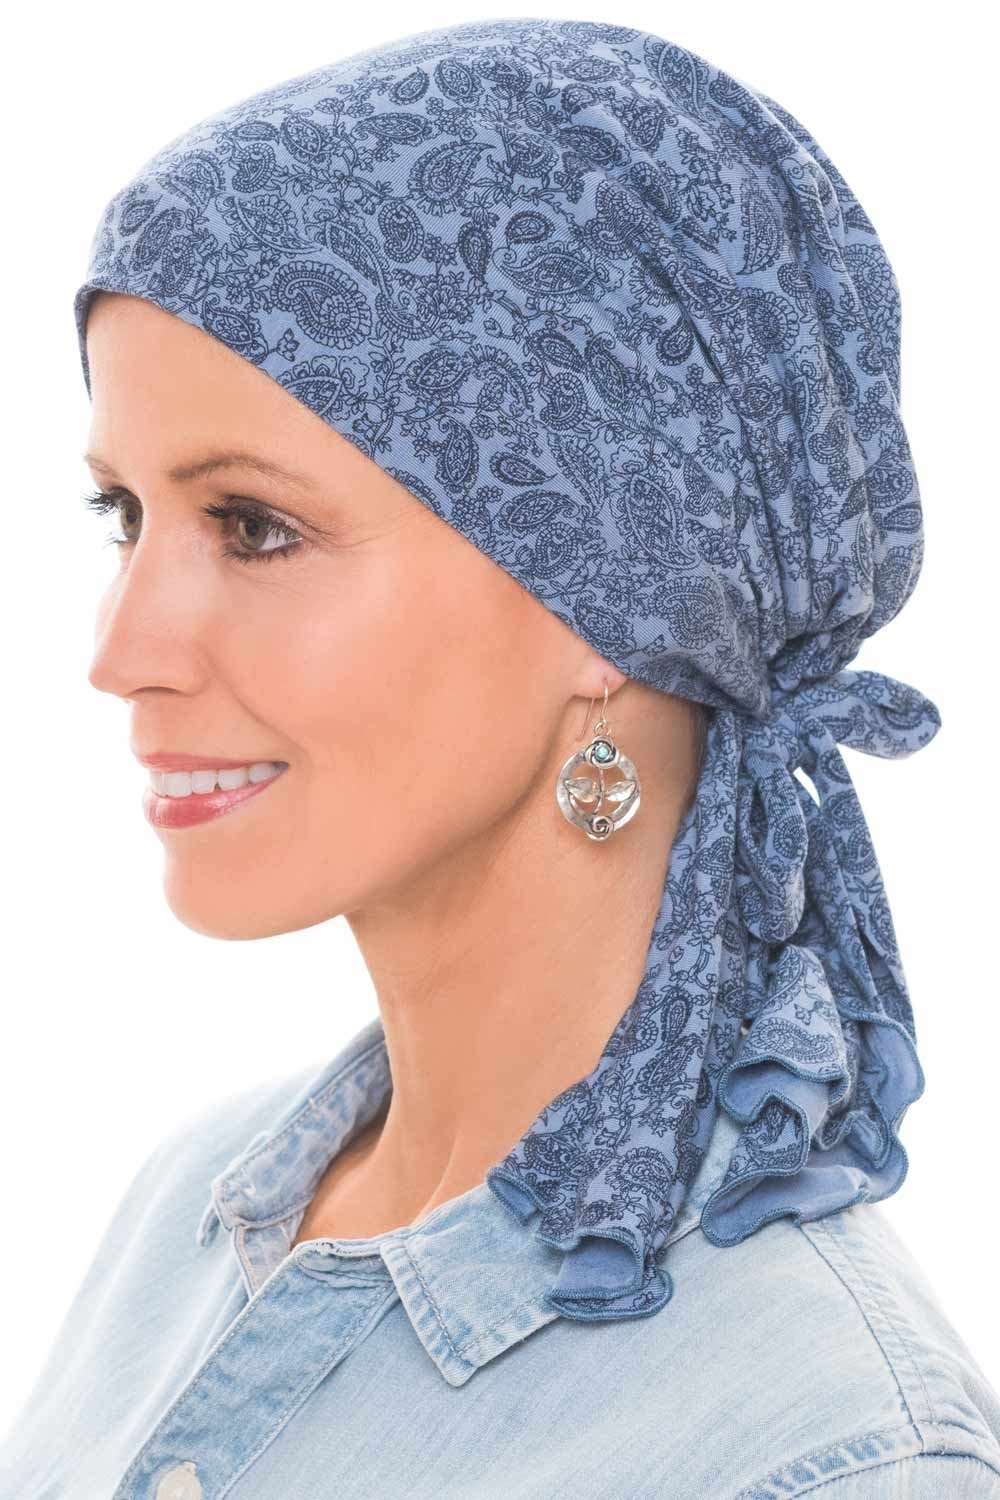 9e7dc840 Cardani So Simple Scarf - Pre Tied Head Scarf for Women in Soft Bamboo -  Cancer & Chemo Patients Luxury Bamboo - Paisley Denim/Navy